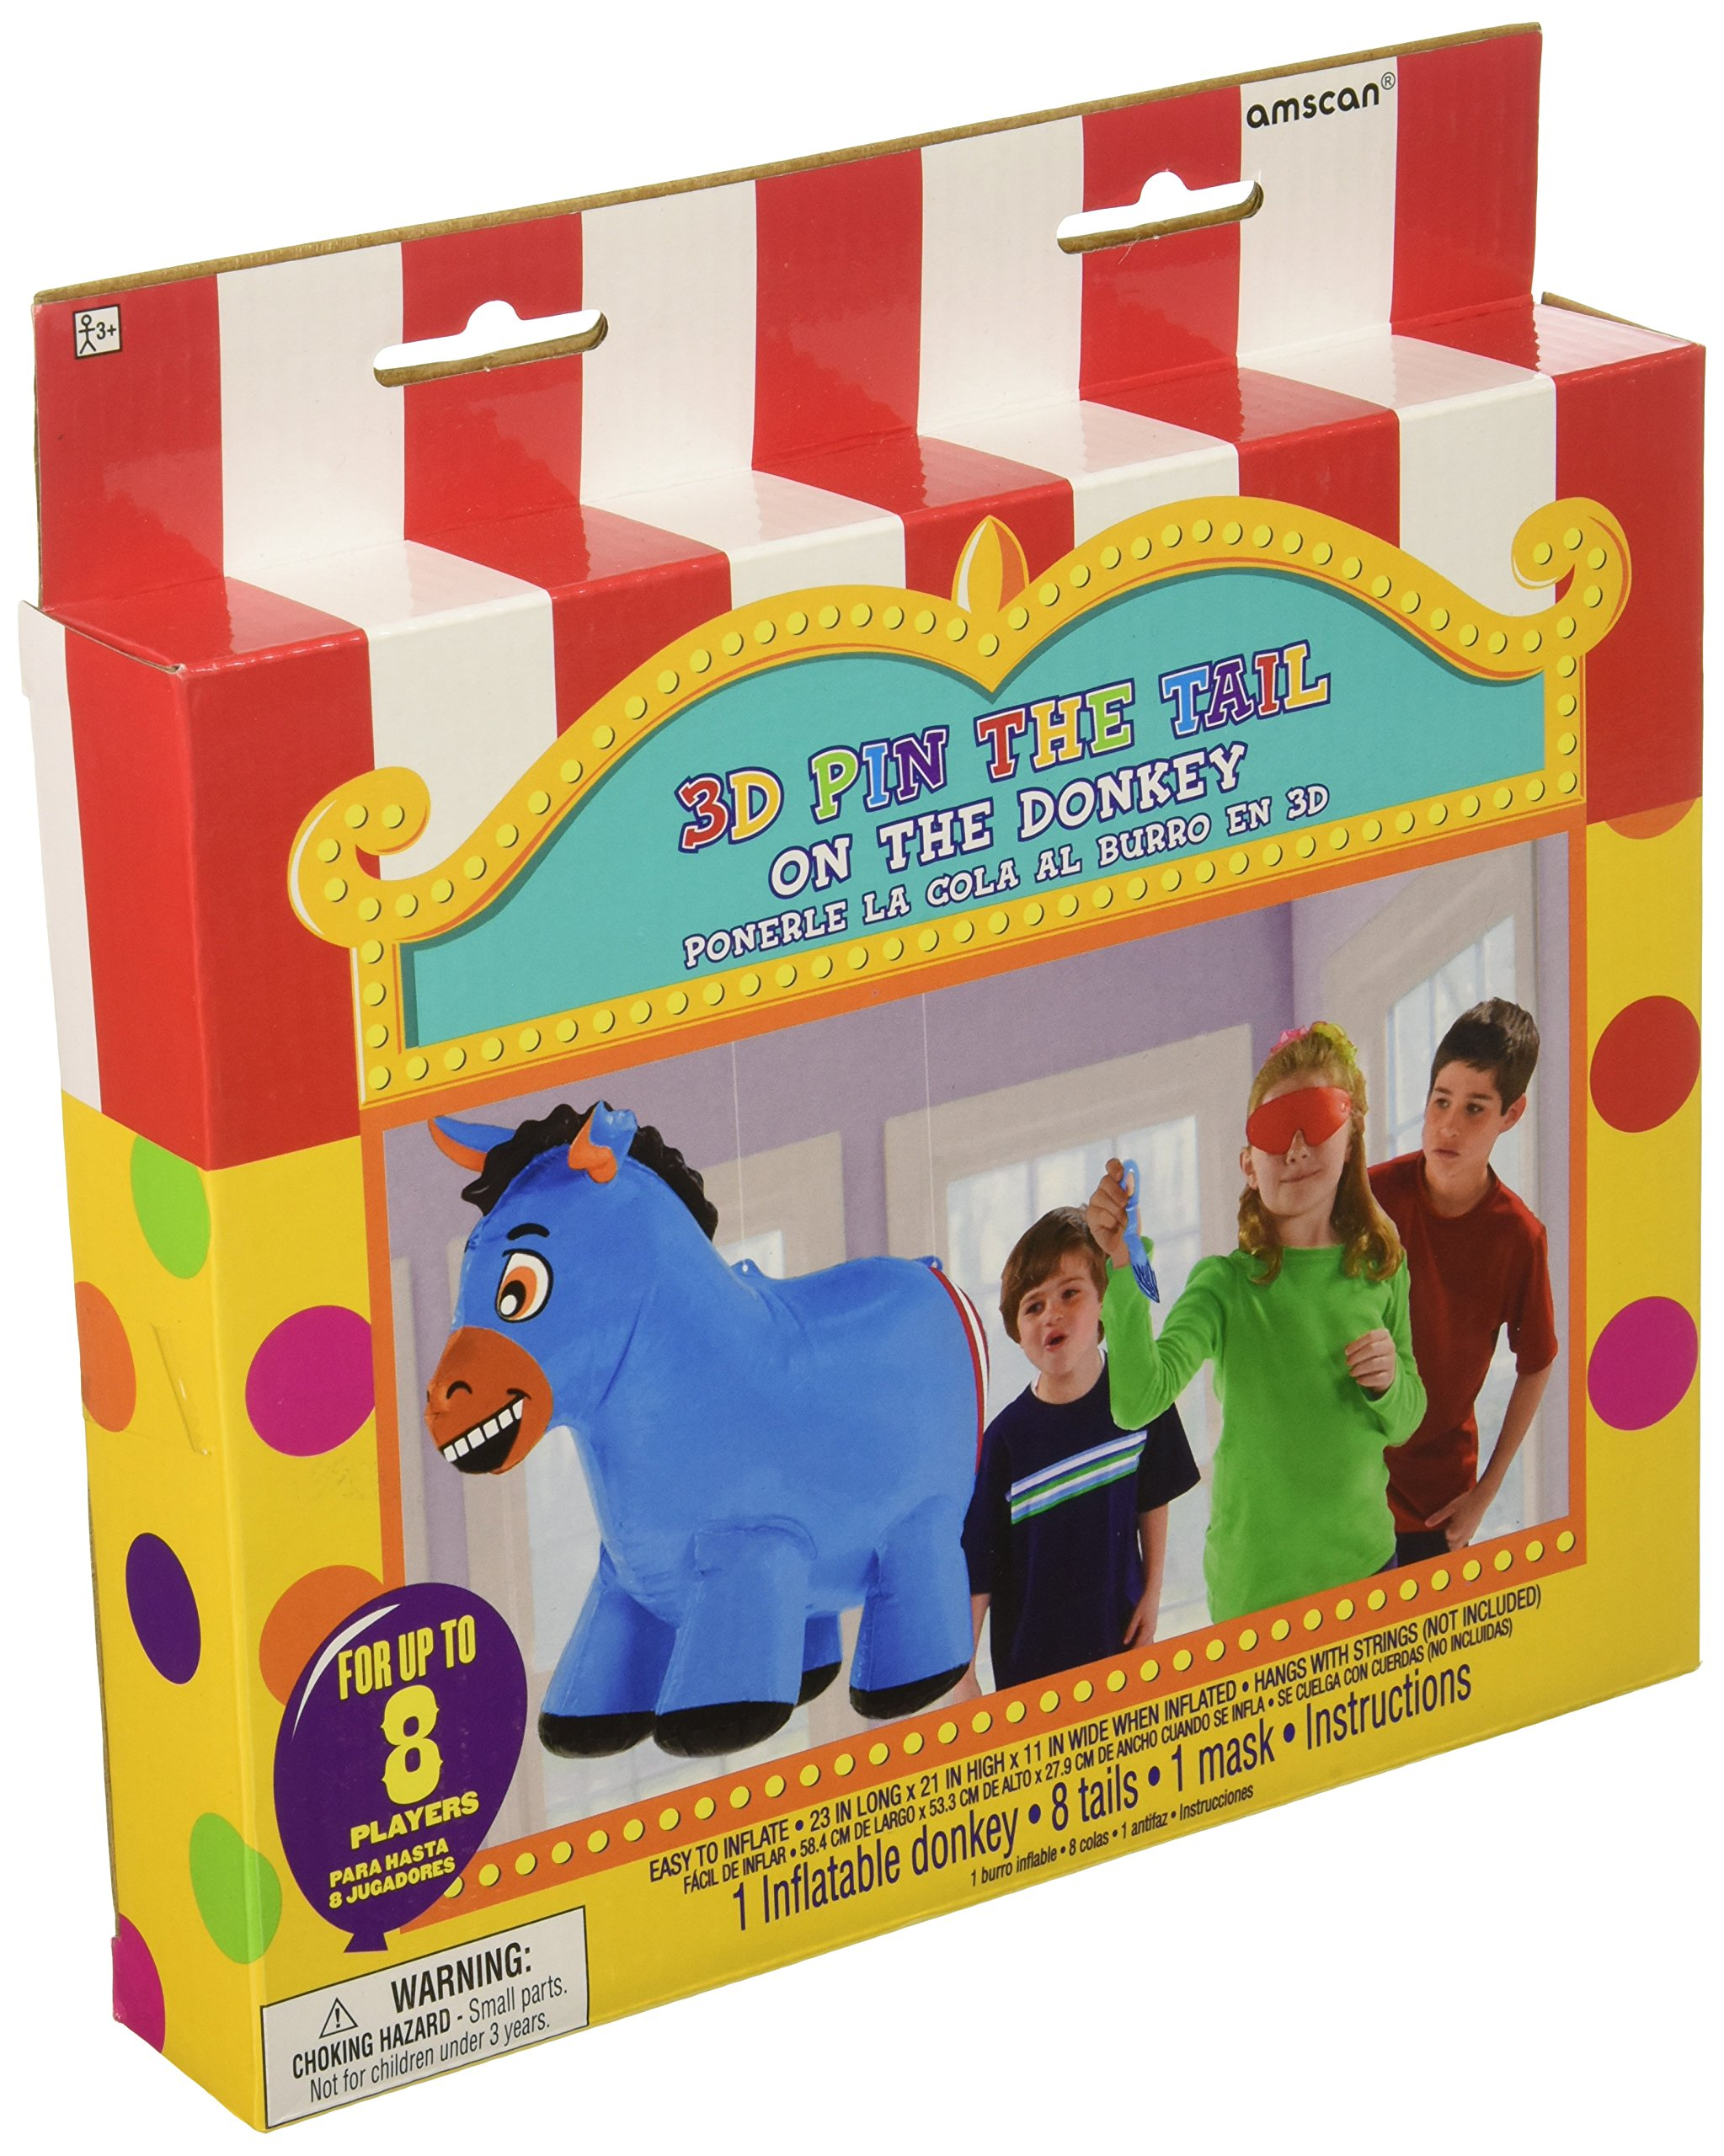 Amscan Carnival Fair Fun Inflatable Pin the Tail on the Donkey Game (10 Piece), Multicolor, 23 x 21 x 11''